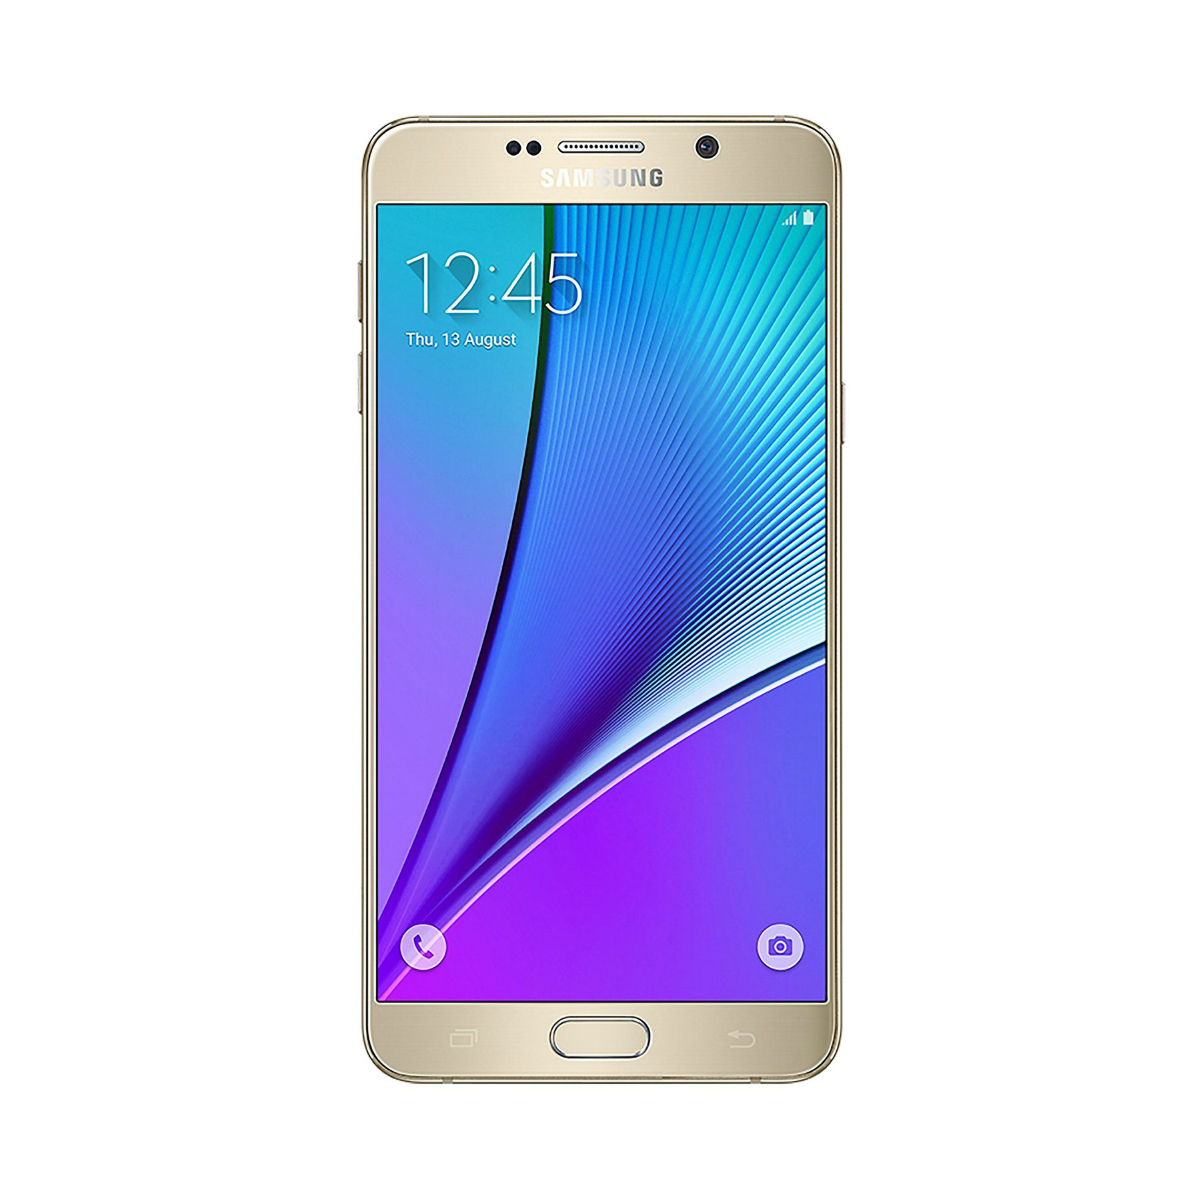 Samsung Galaxy Note 5 SM-N920T 32GB for T-Mobile (Refurbished)